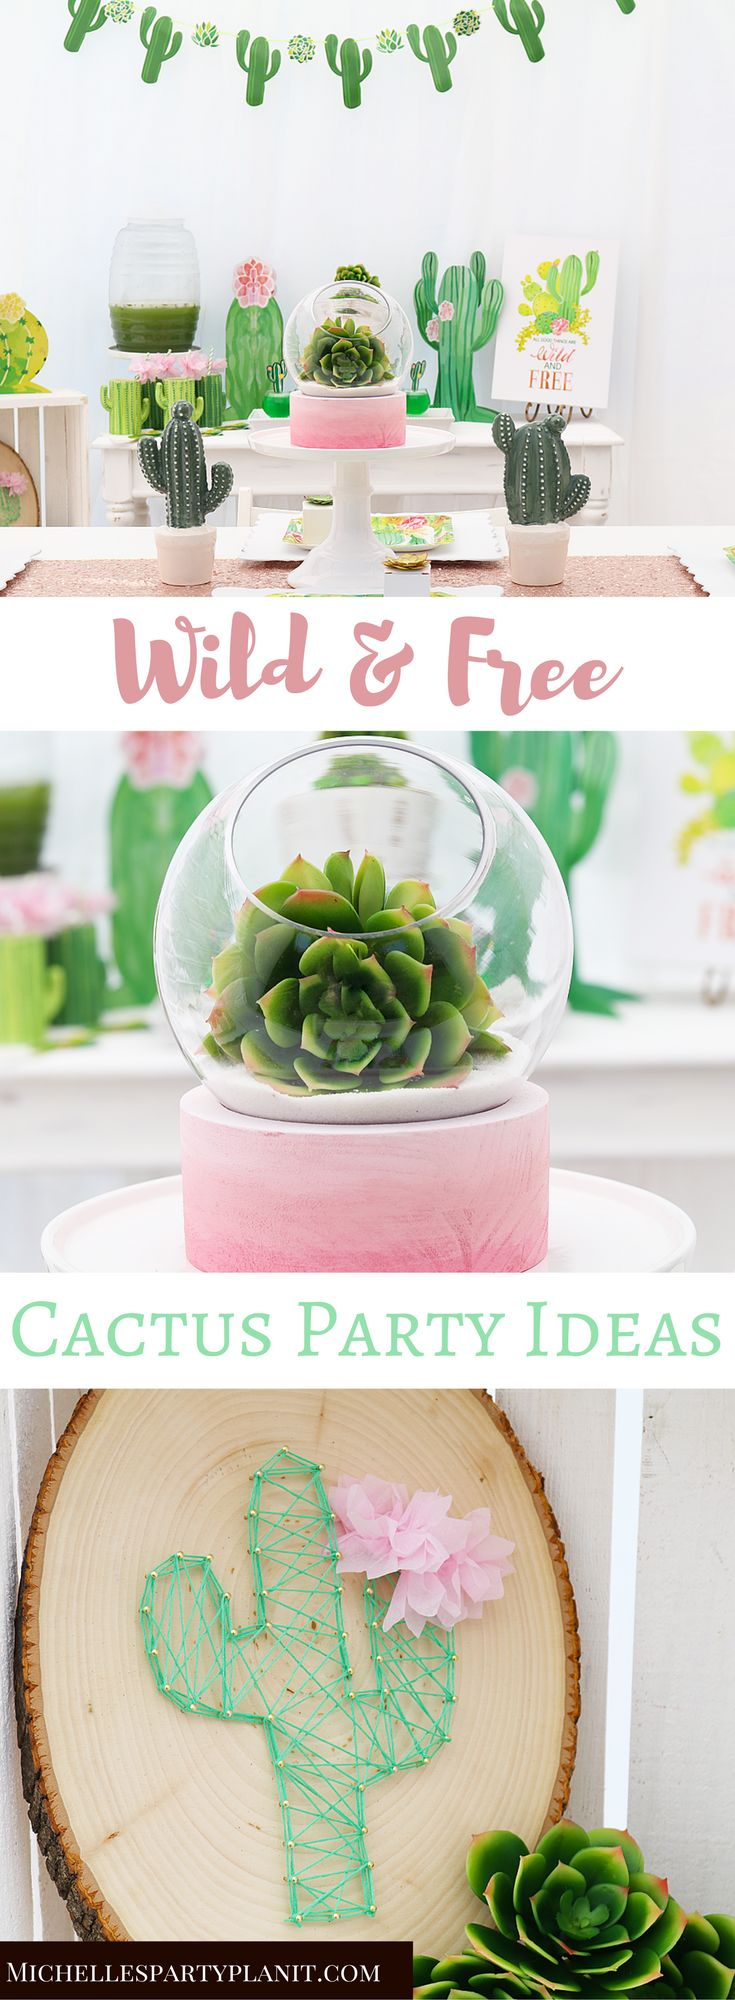 Celebrate all that is Wild and Free with this on trend Succulent and Cactus Party by Michelle's Party Plan-It. Filled with simple and beautiful craft ideas for any celebration.